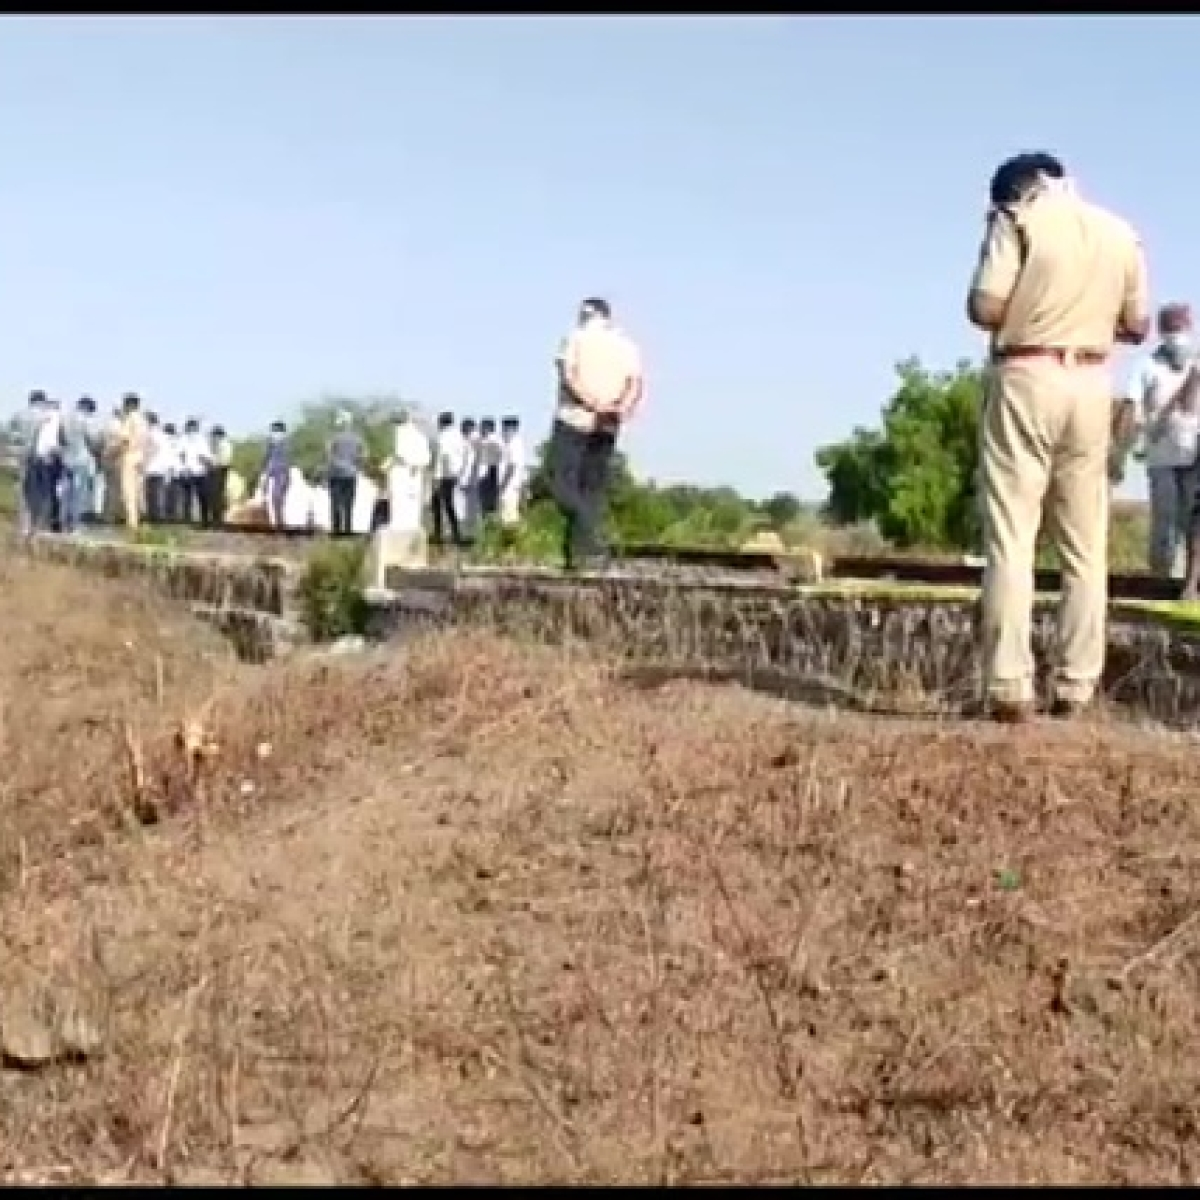 Maharashtra govt announces Rs 5 lakh ex gratia to families of deceased in Aurangabad train accident